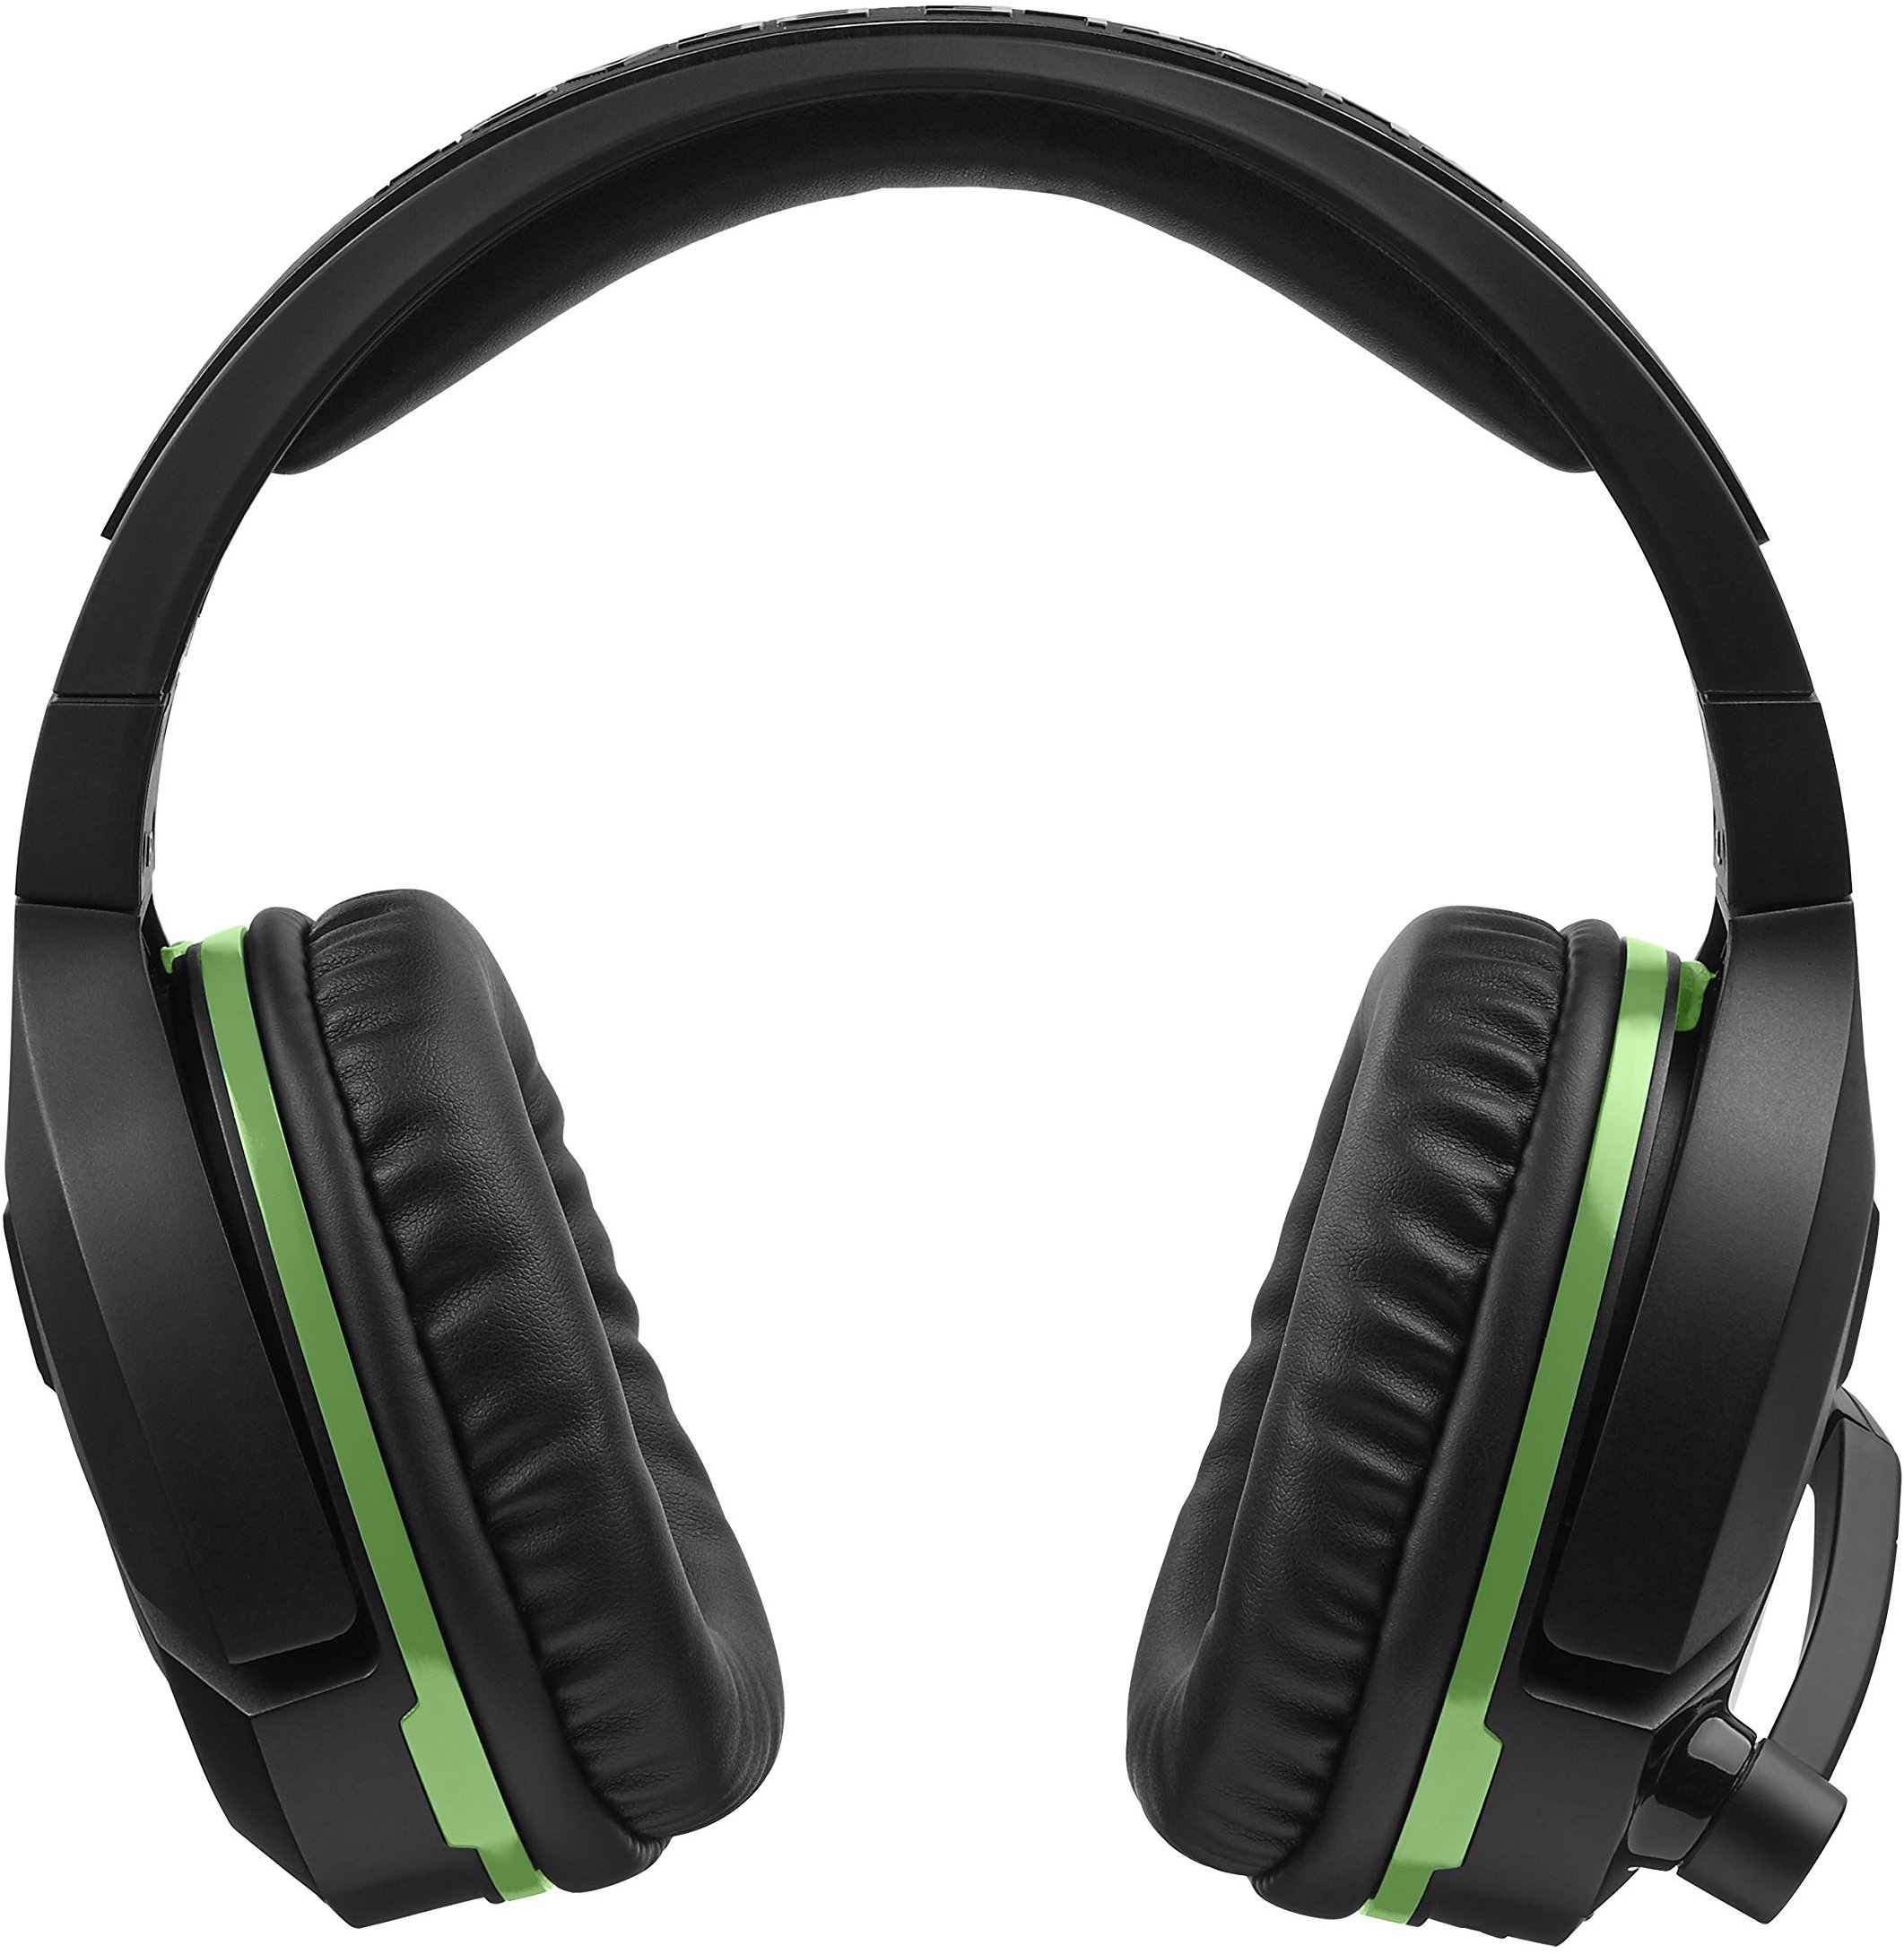 Turtle Beach Stealth 700 Premium Wireless Headset Review